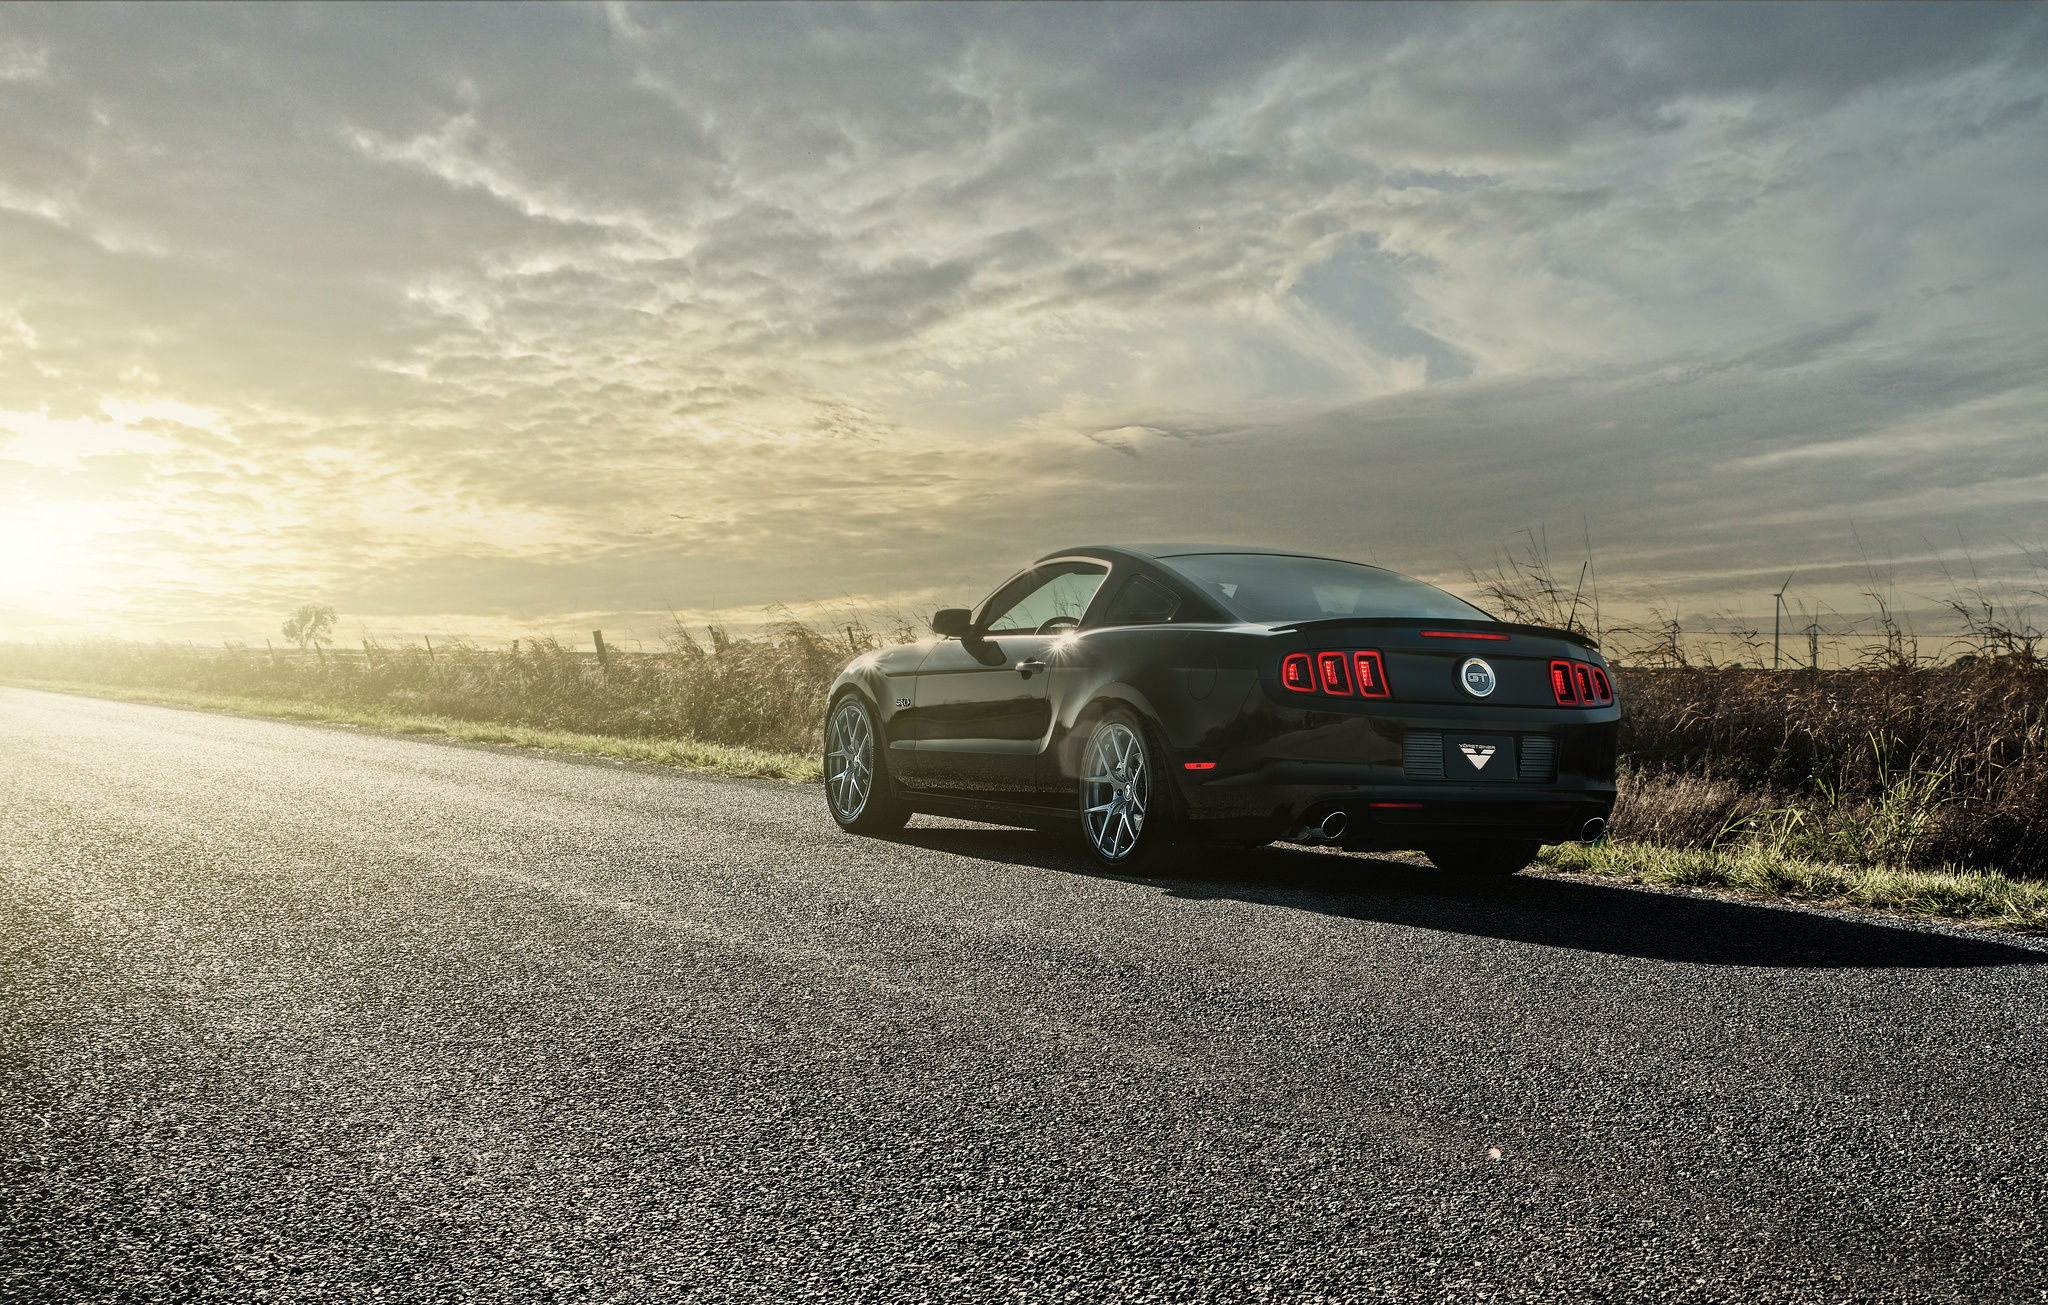 119763 download wallpaper Auto, Mustang, Cars, Shine, Light, Road, Back View, Rear View, Gt screensavers and pictures for free